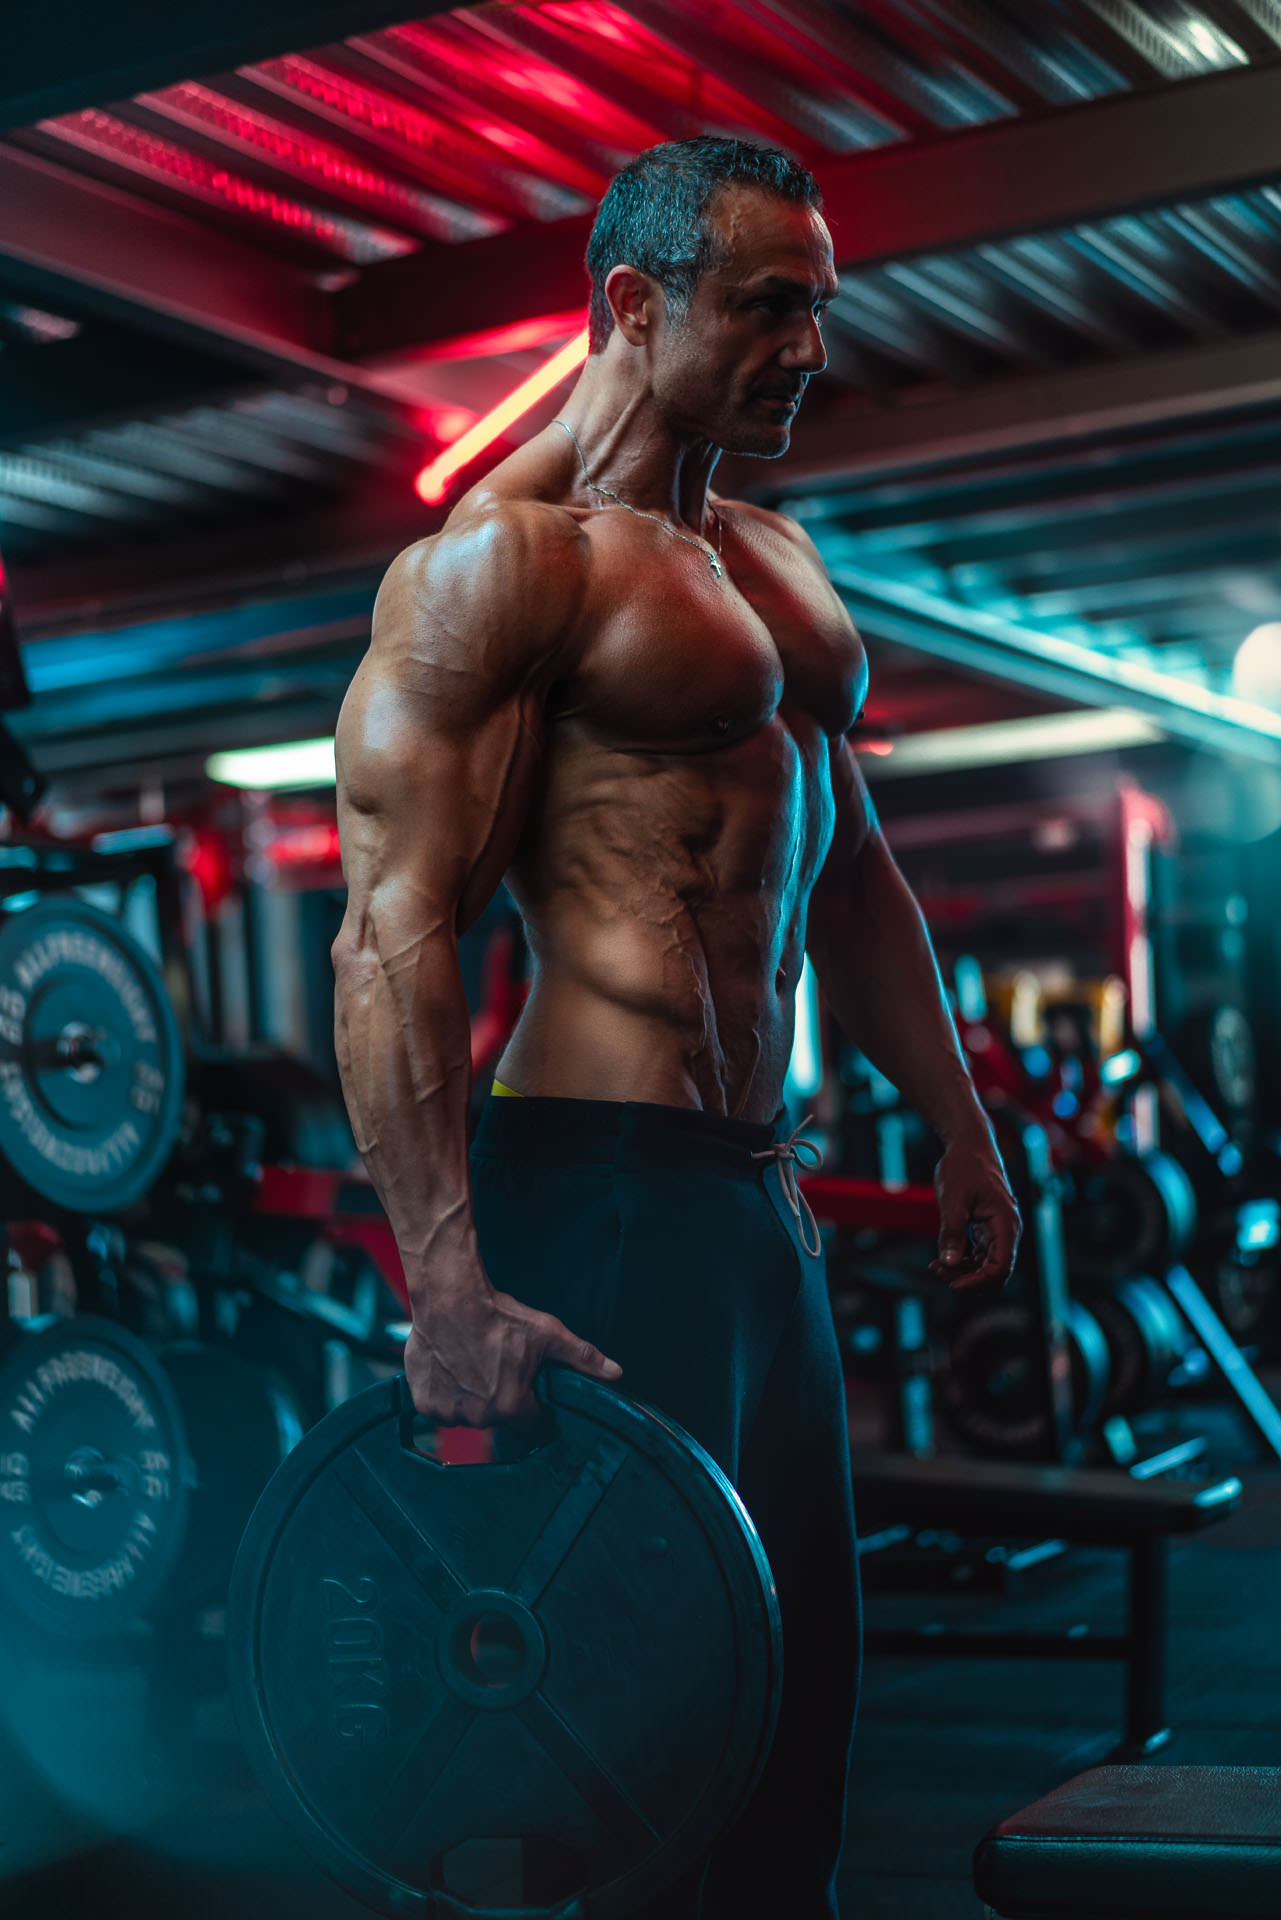 2020-03-15 - Enzo - Muscle Factory - 01578 - 1920px